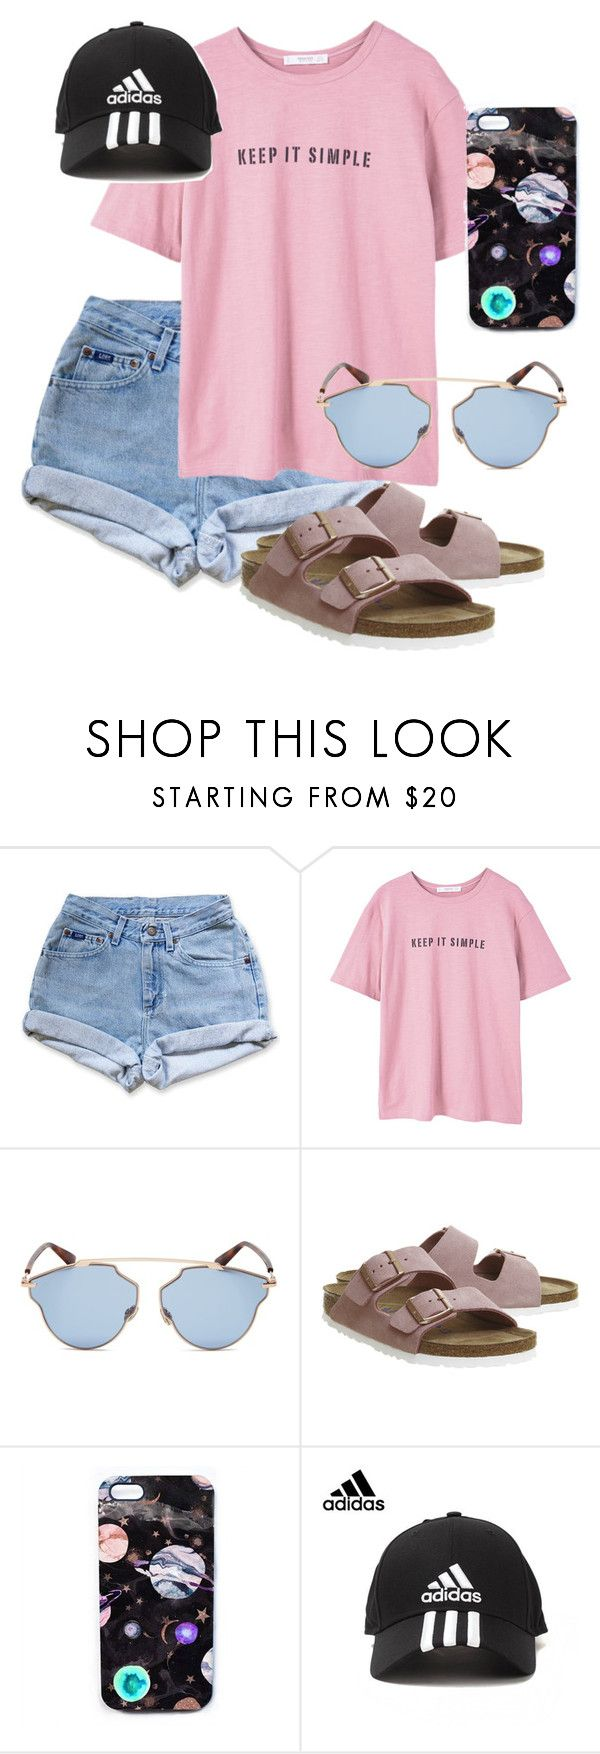 """What Should I Wear Today?"" by madisoncorell ❤ liked on Polyvore featuring Levi's, MANGO, Christian Dior, Birkenstock, Nikki Strange and adidas"